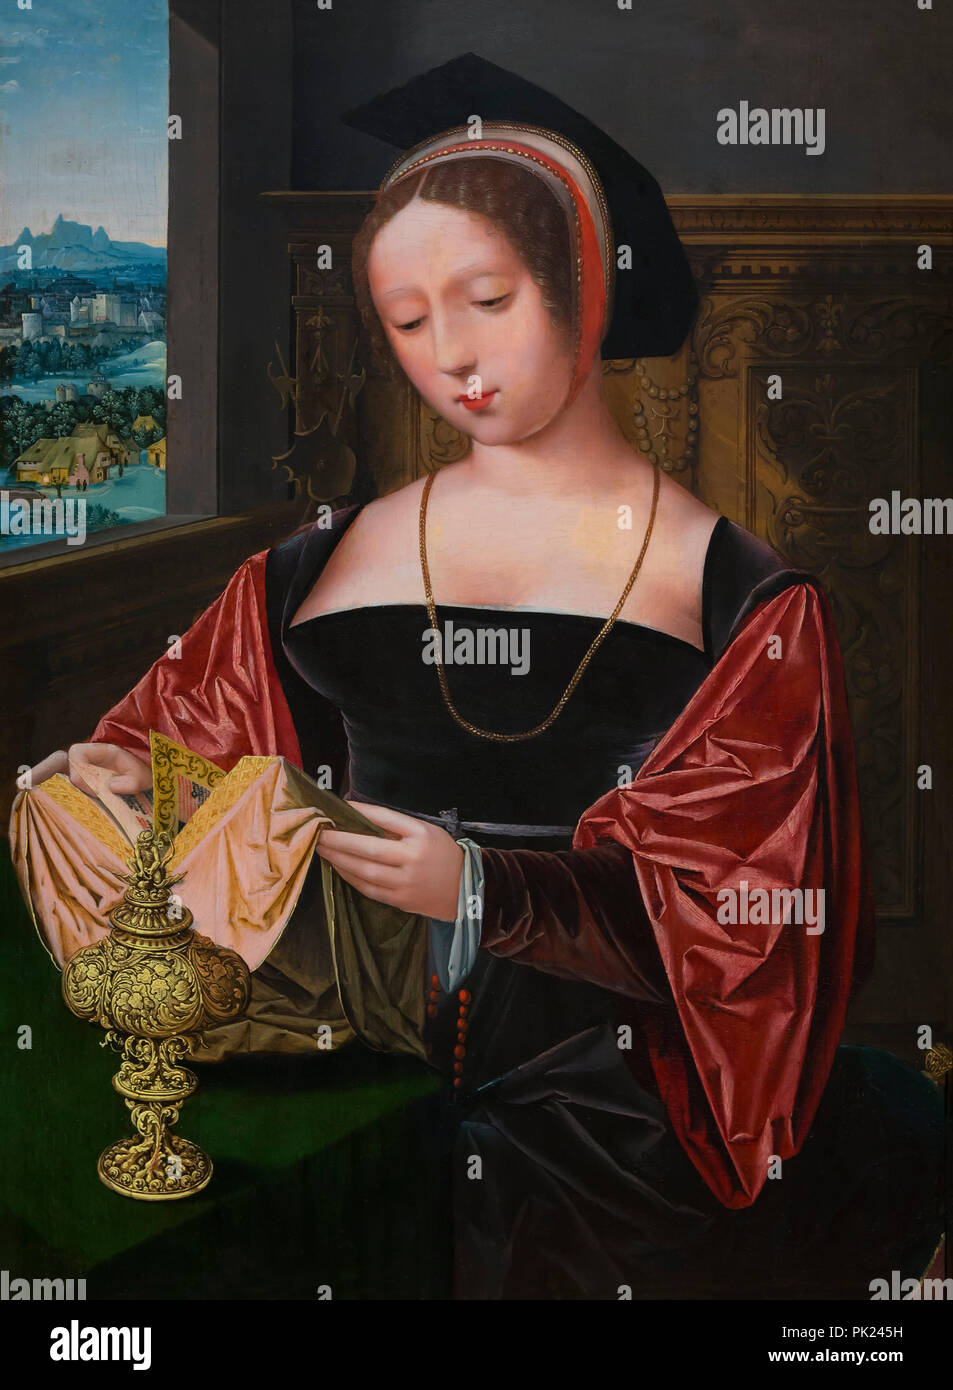 A Lady Reading, Saint Mary Magdalene, Master of Female Half-Lengths, circa 1530, Art Institute of Chicago, Chicago, Illinois, USA, North America, - Stock Image